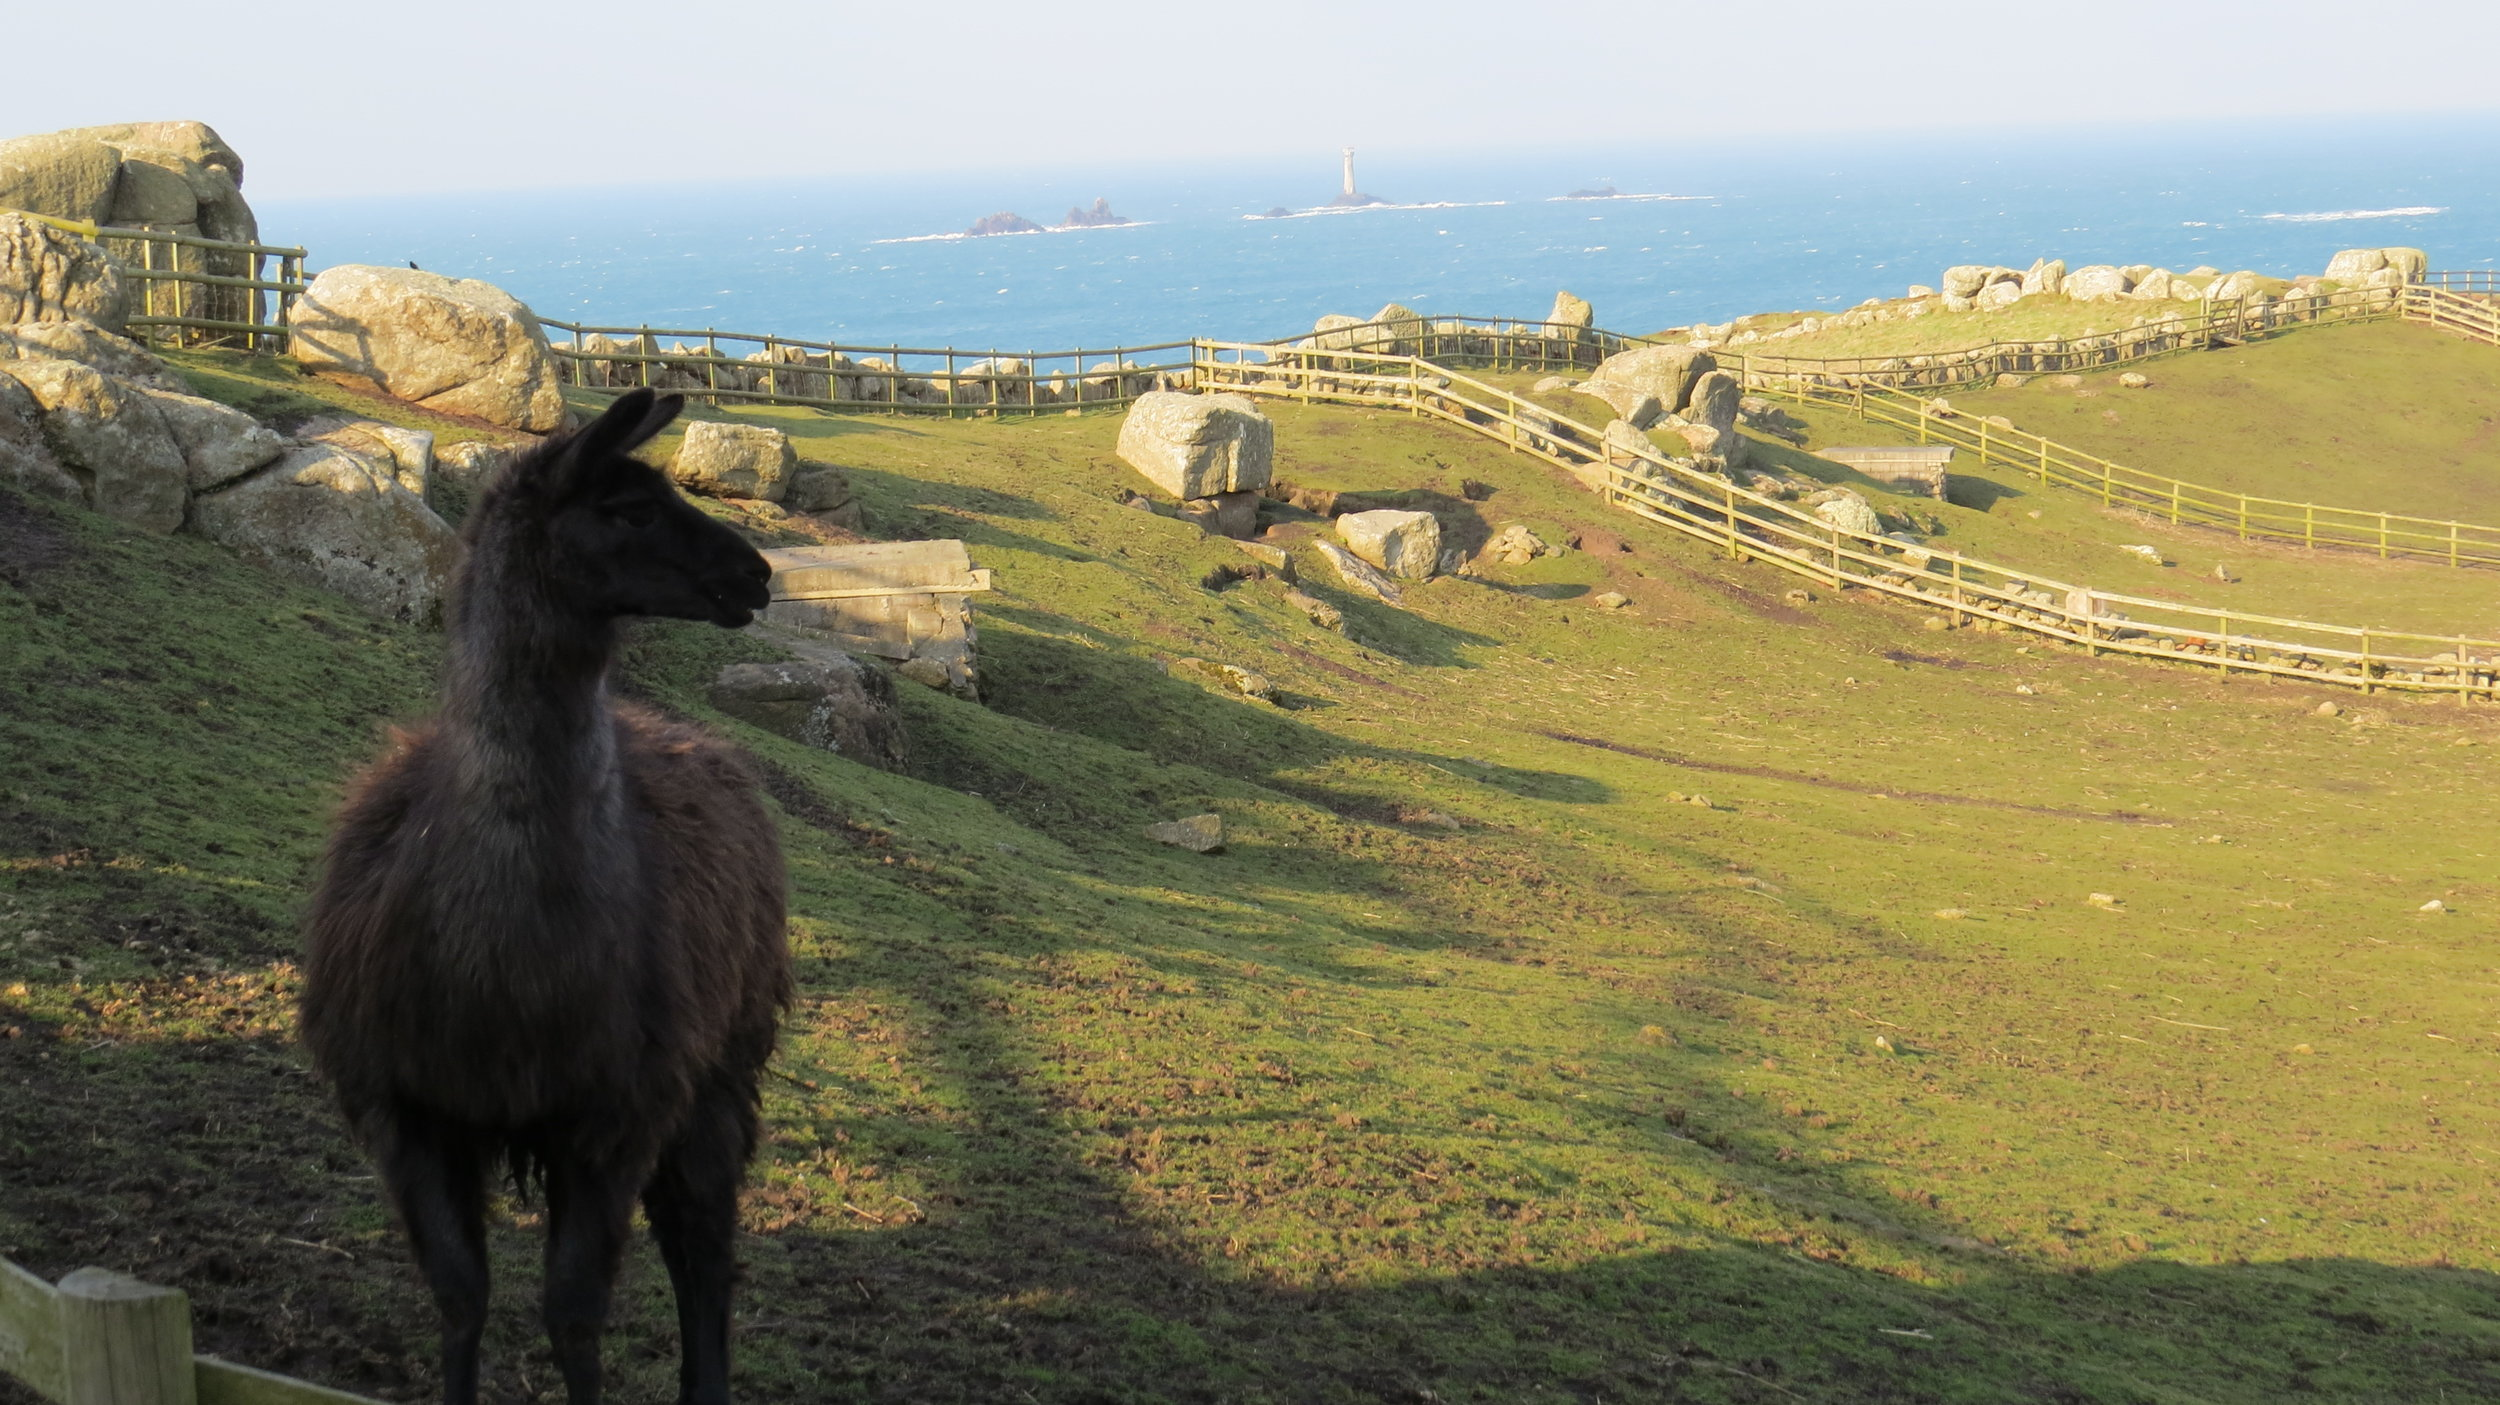 Alpaca at Lands End